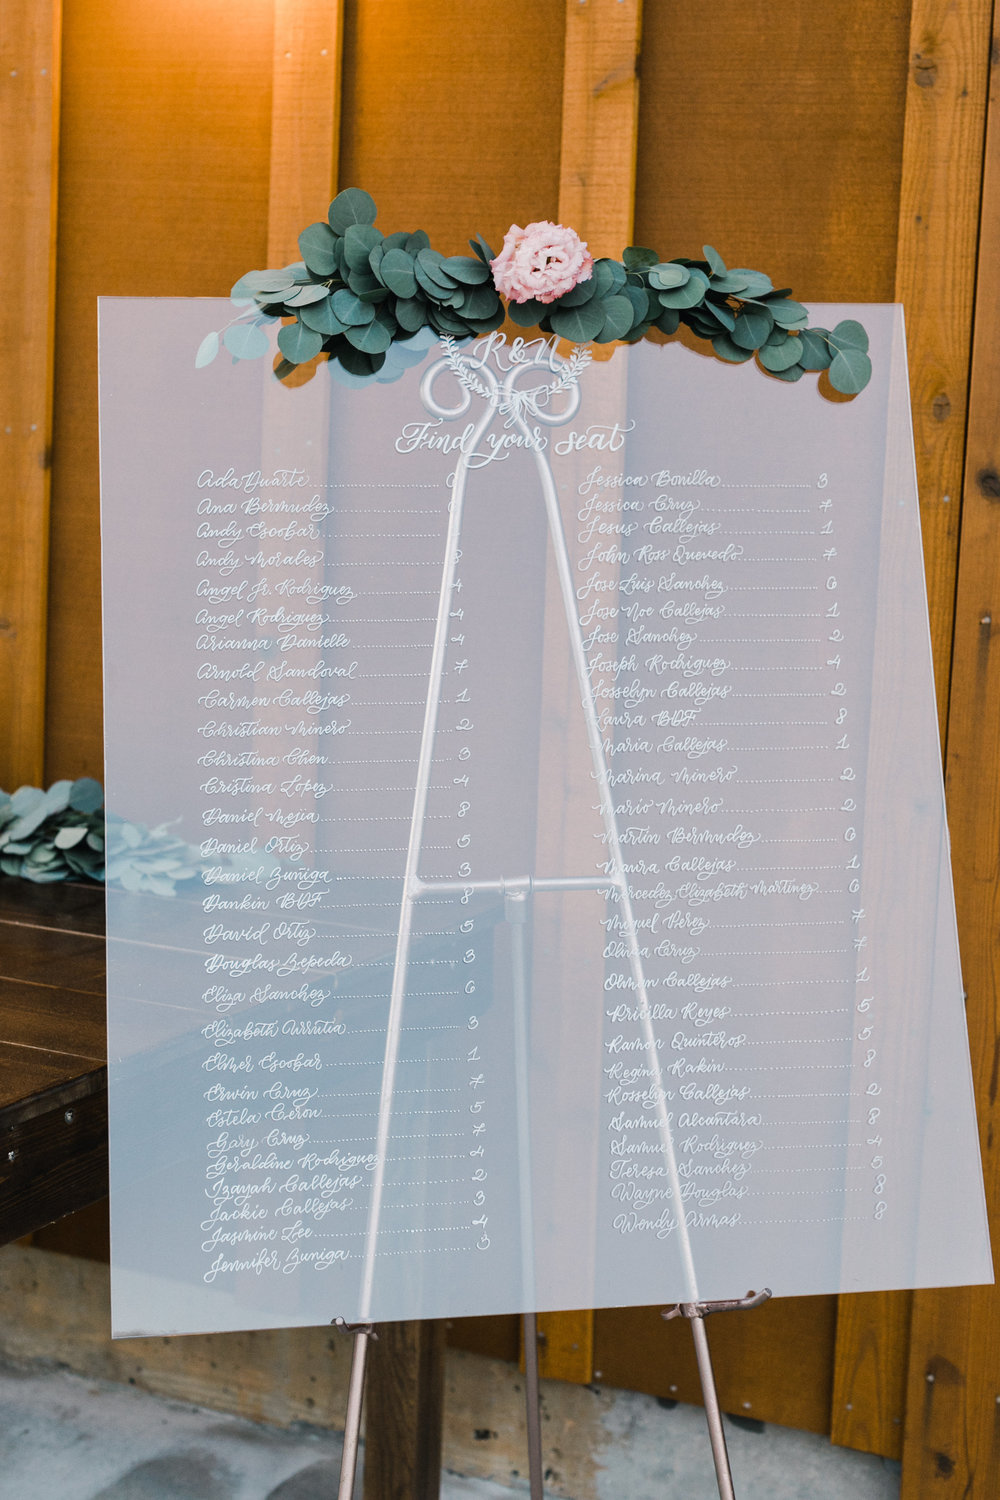 Yosemite wedding table number calligraphy items by paperloveme5.jpg